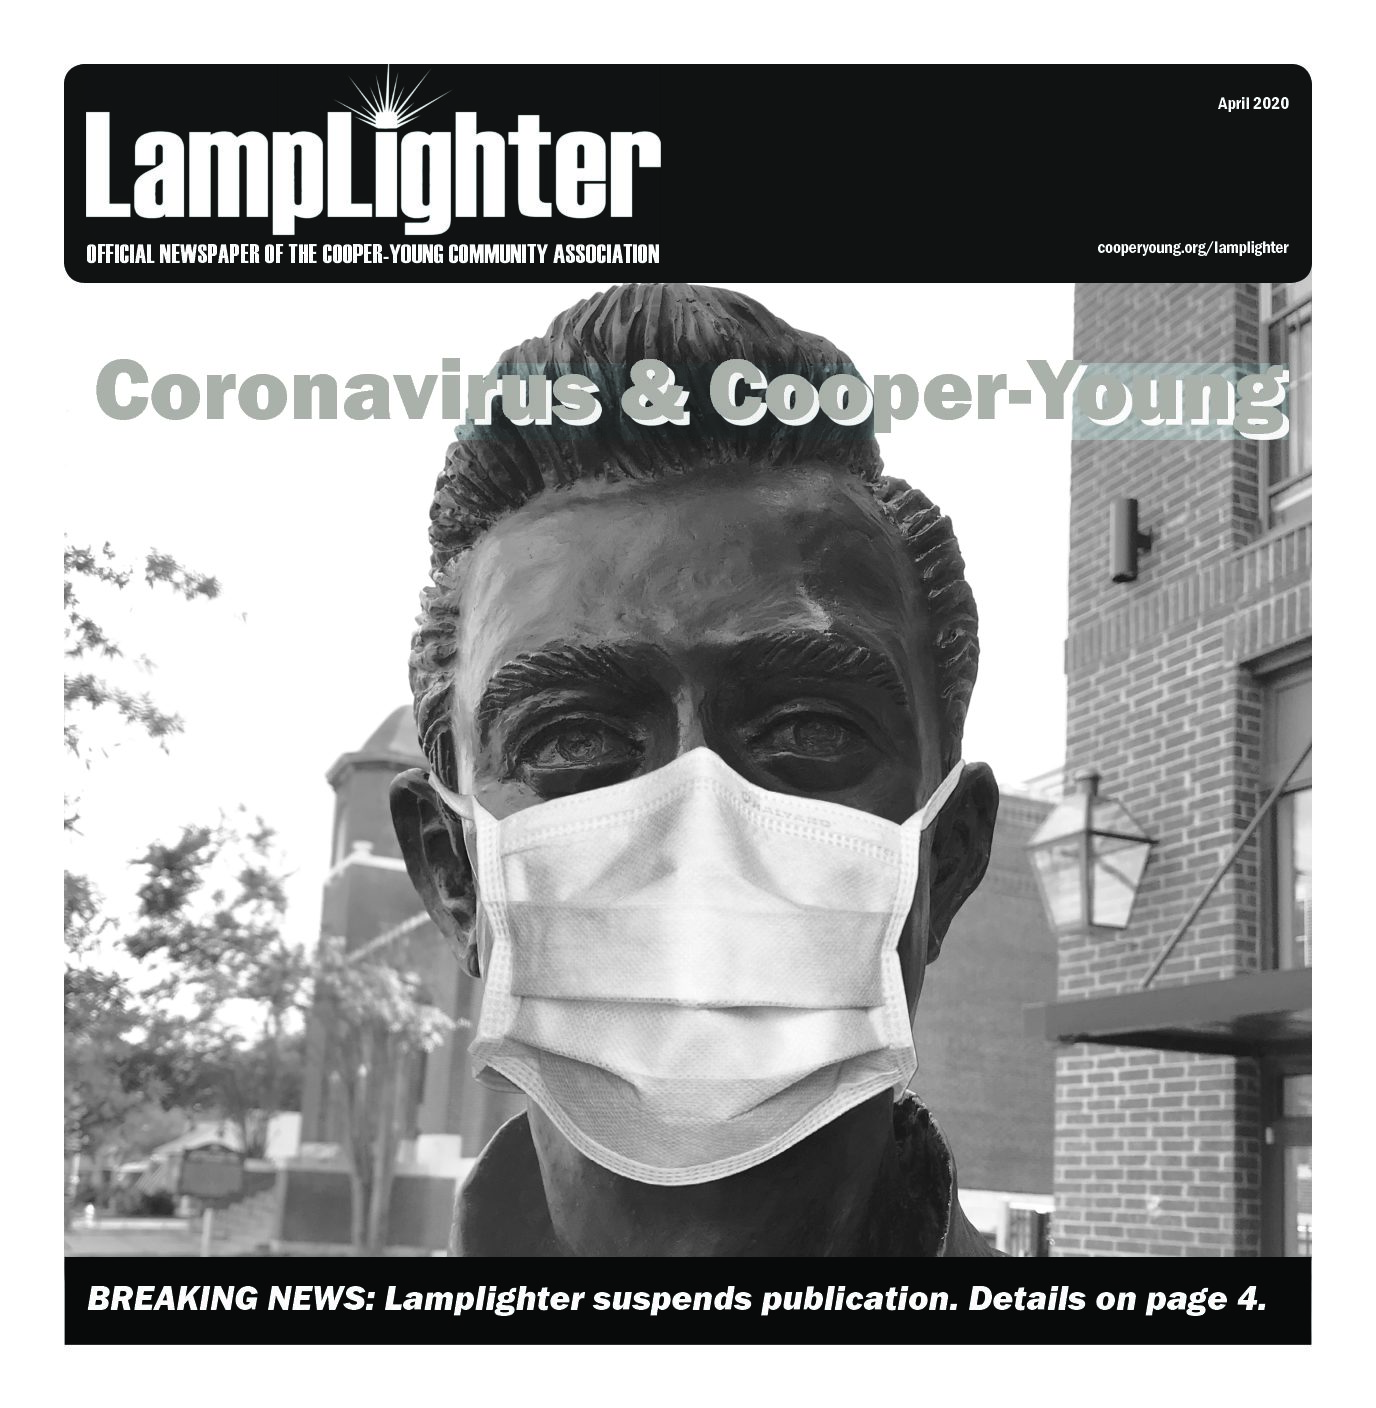 Lamplighter suspends publication